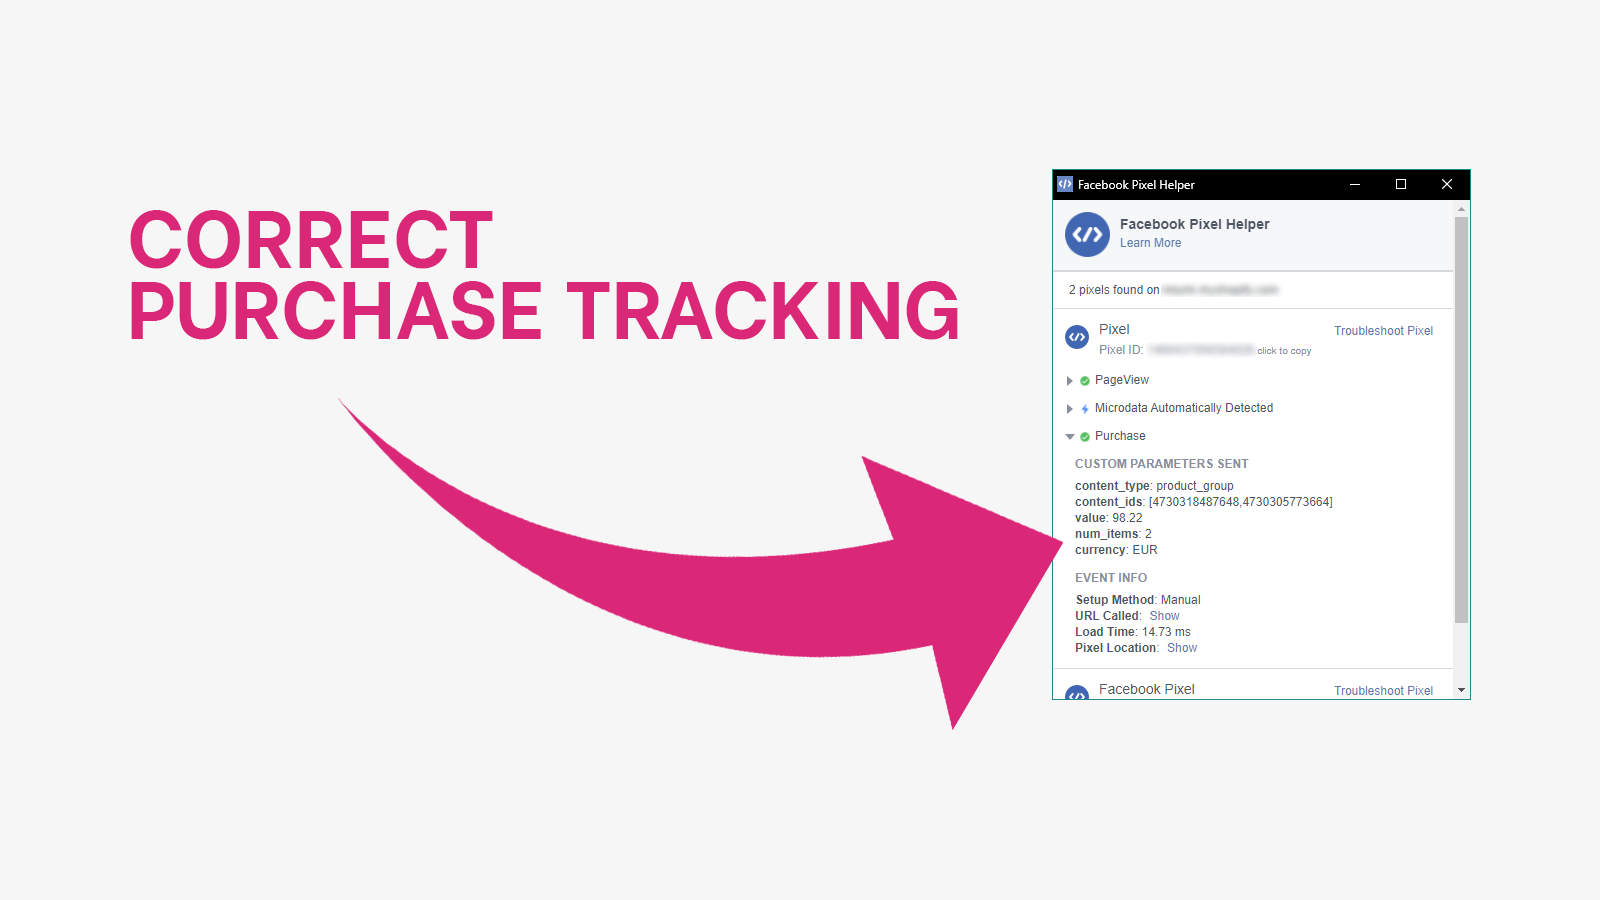 Correct Pixel purchase event tracking